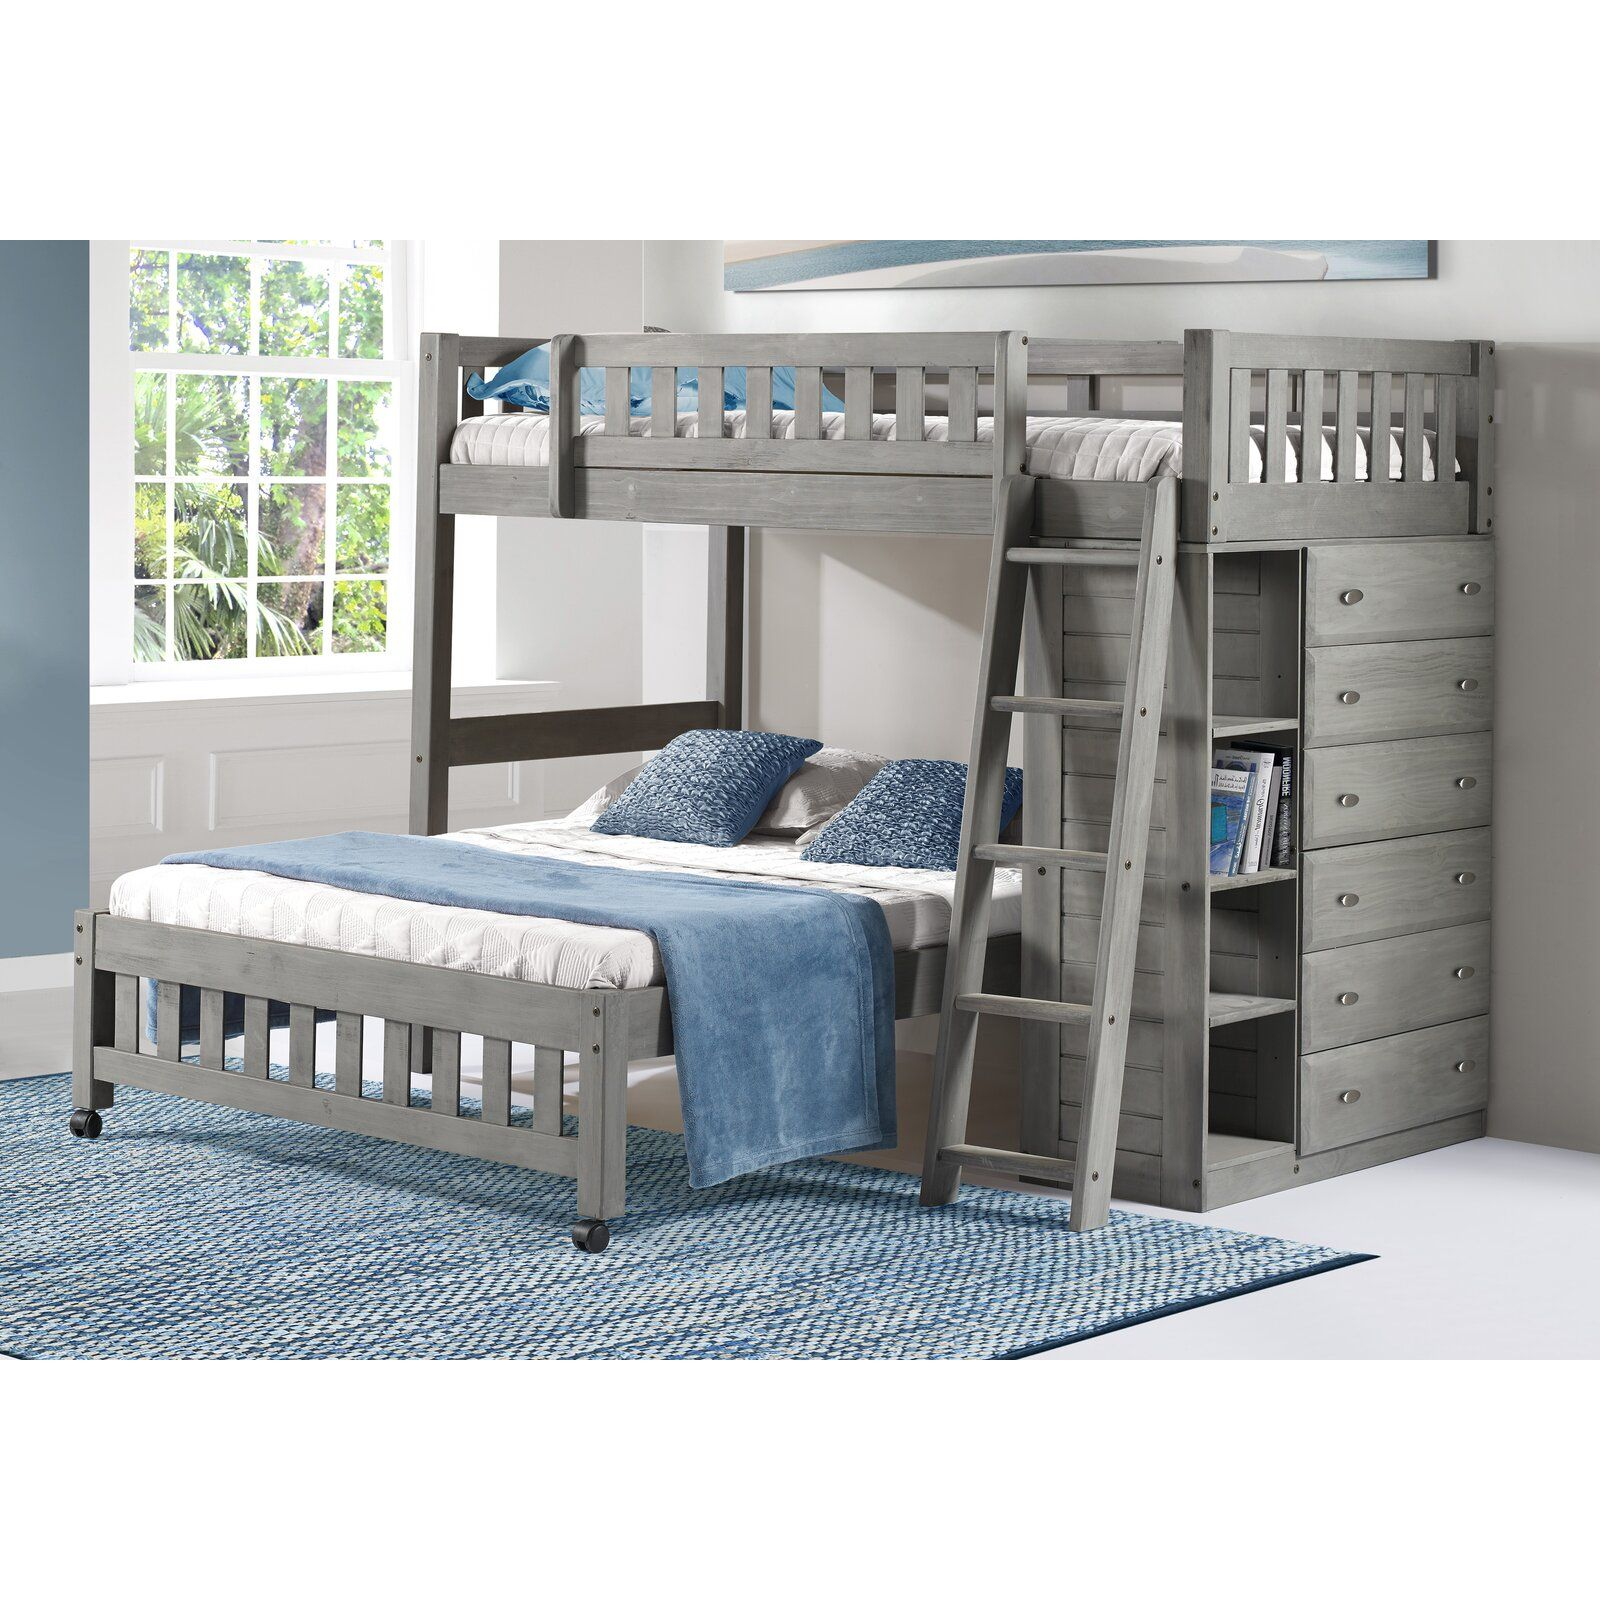 Orval Twin Over Full L Shaped Bunk Bed With Drawers And Shelves